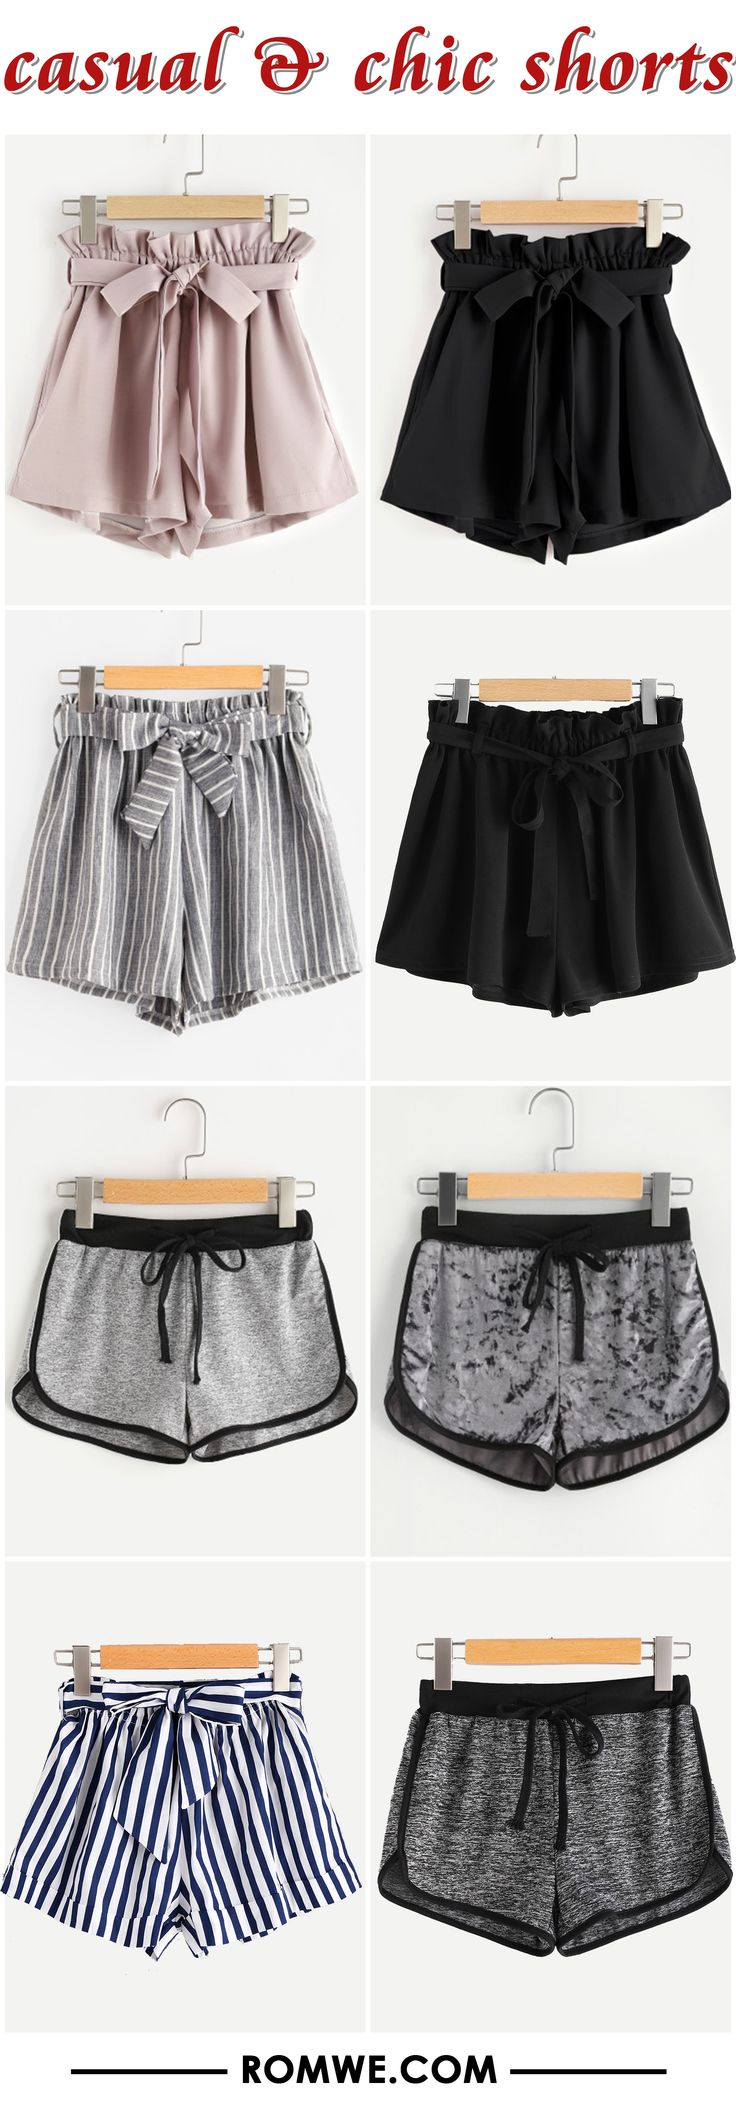 summer chic & casual shorts from romwe.com